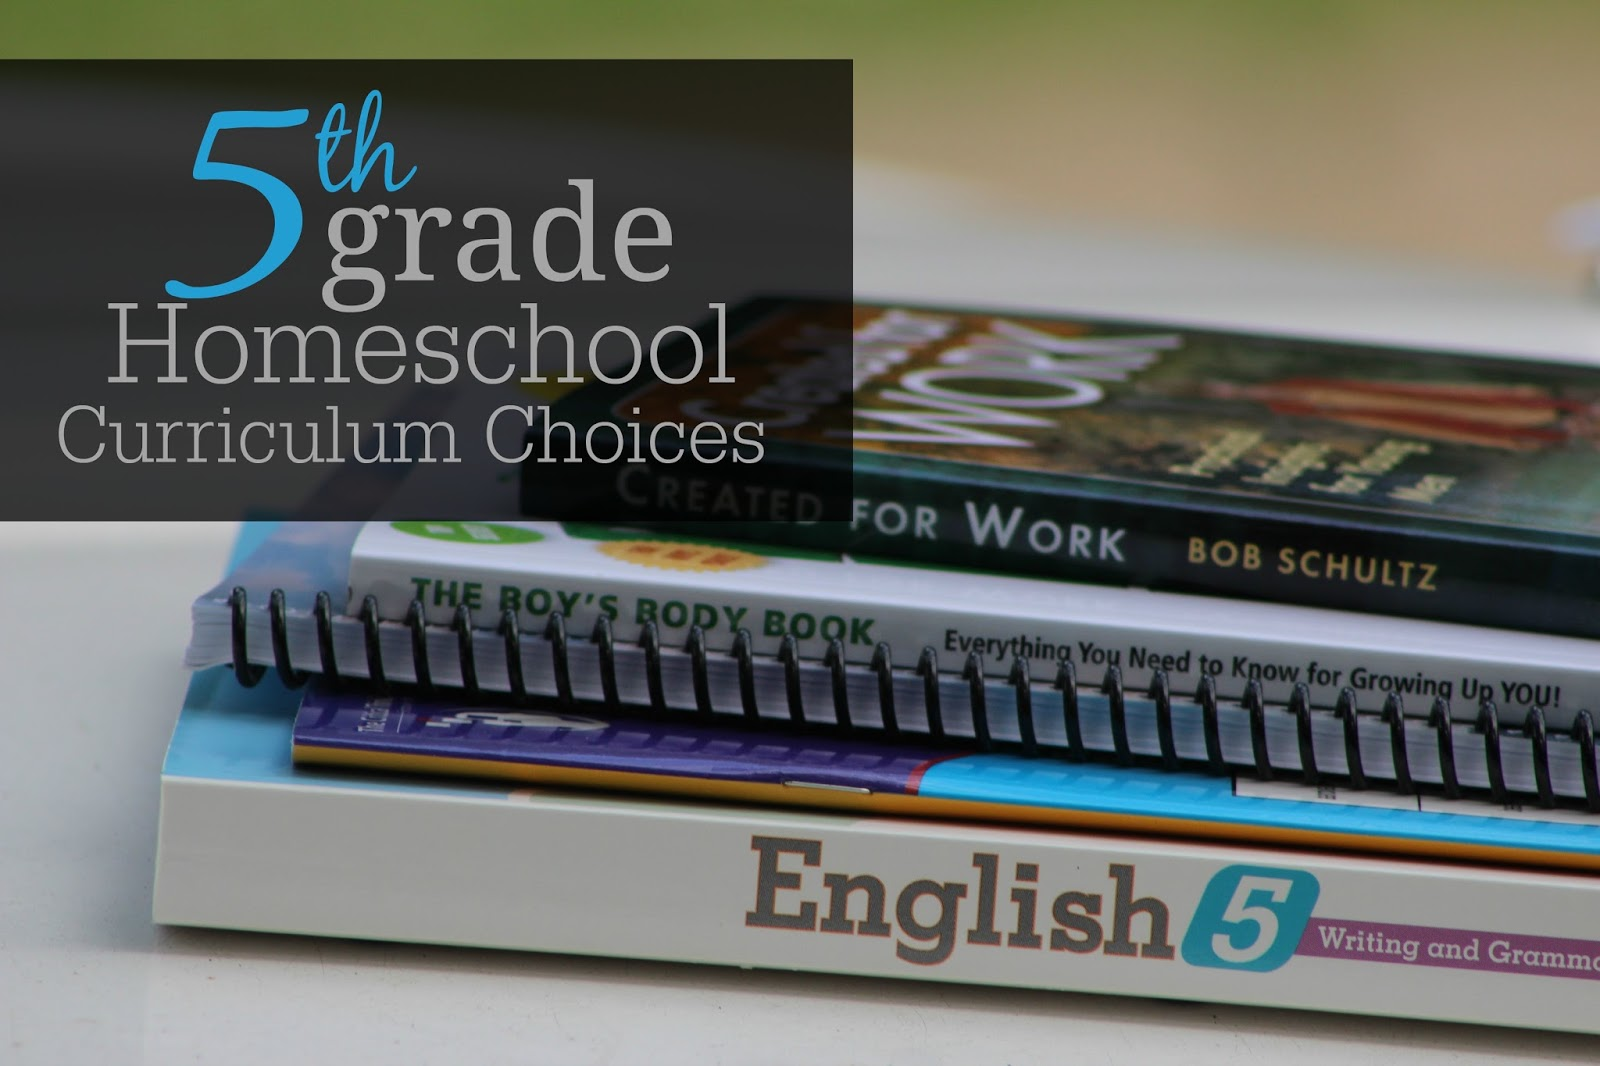 was on your homeschool curriculum list last year?